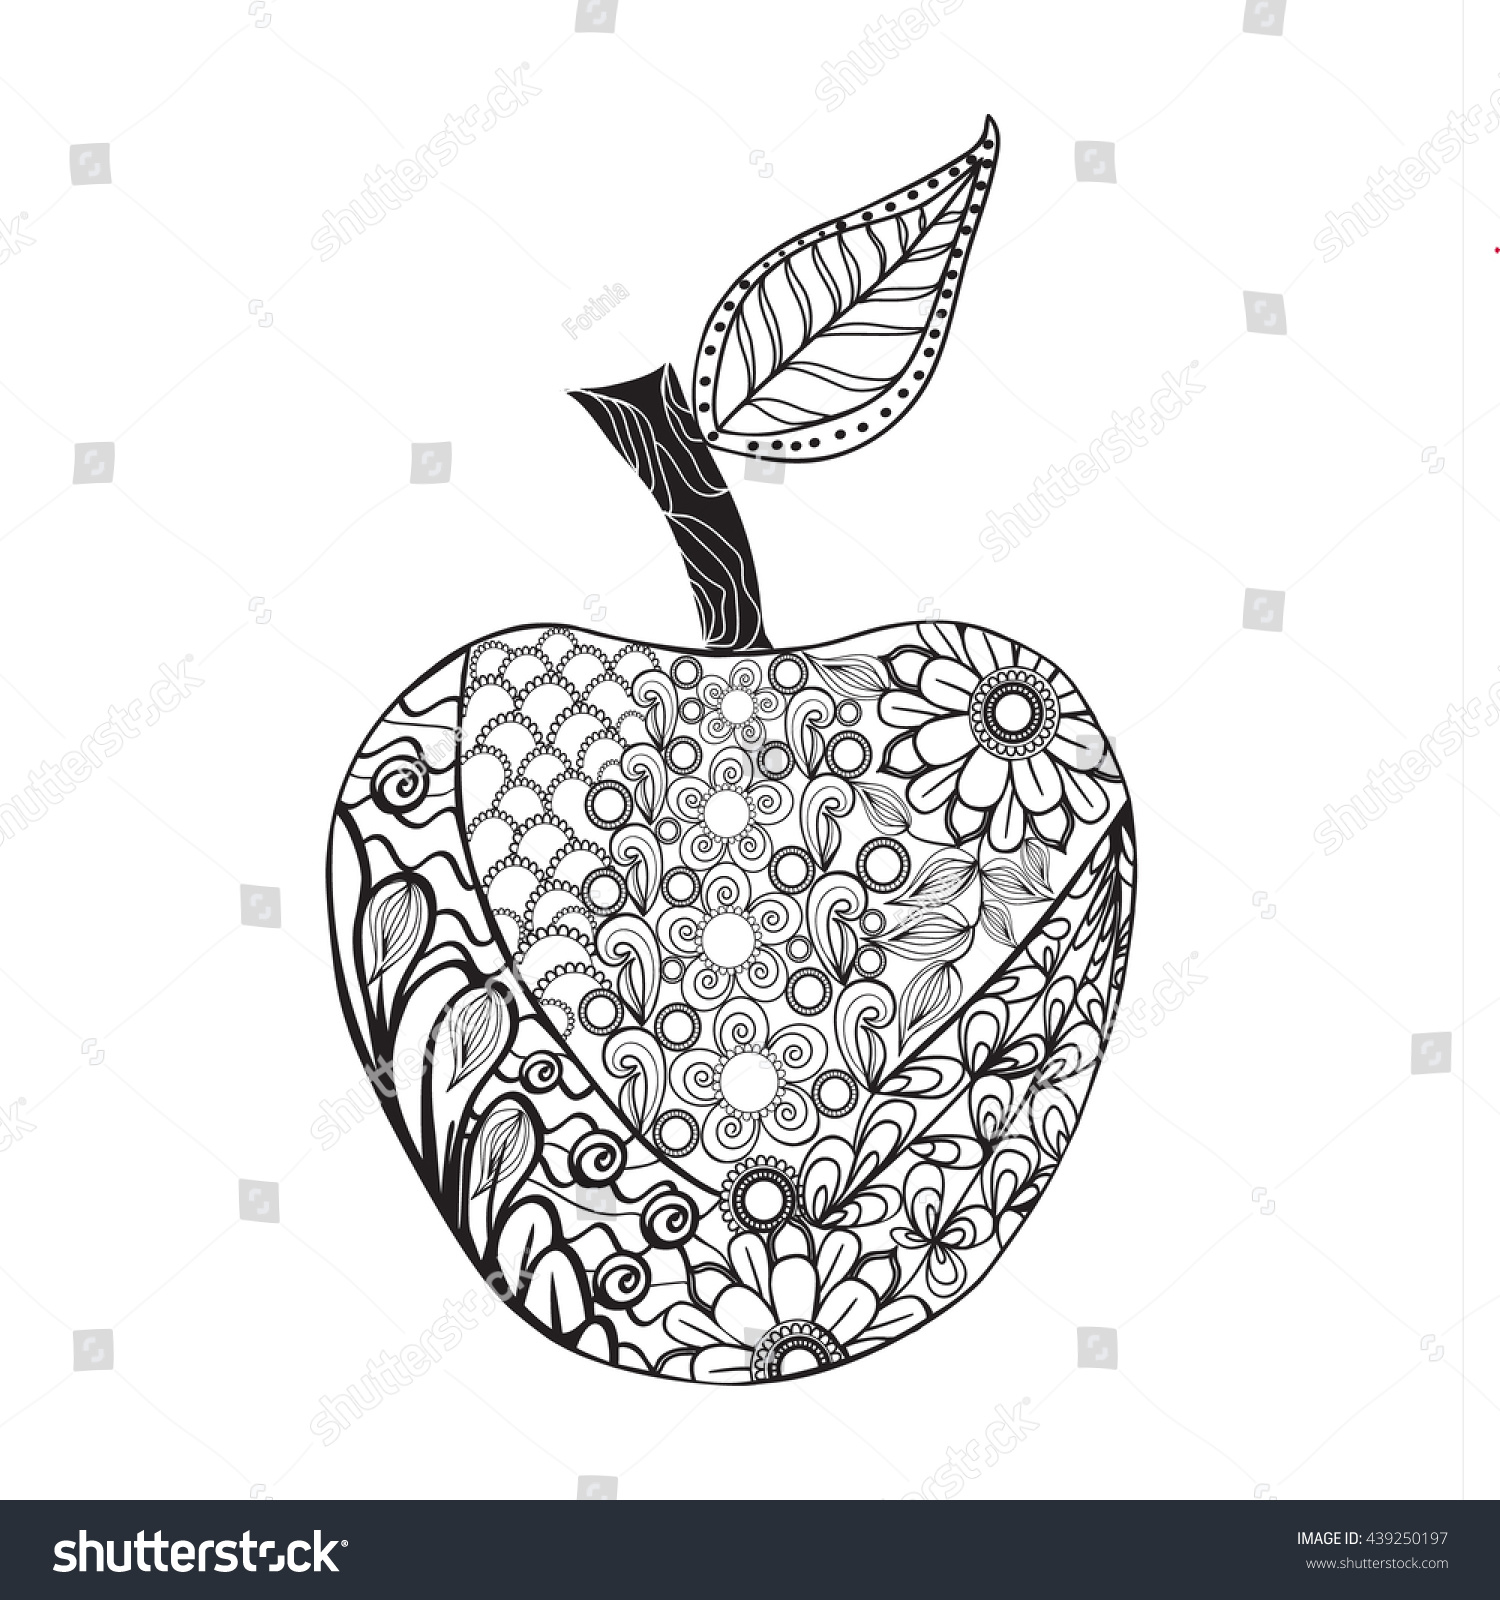 Vector Monochrome Apple Zentangle Style For Coloring Book Hand Drawn Decorative Fruit Illustration Doodle Outline